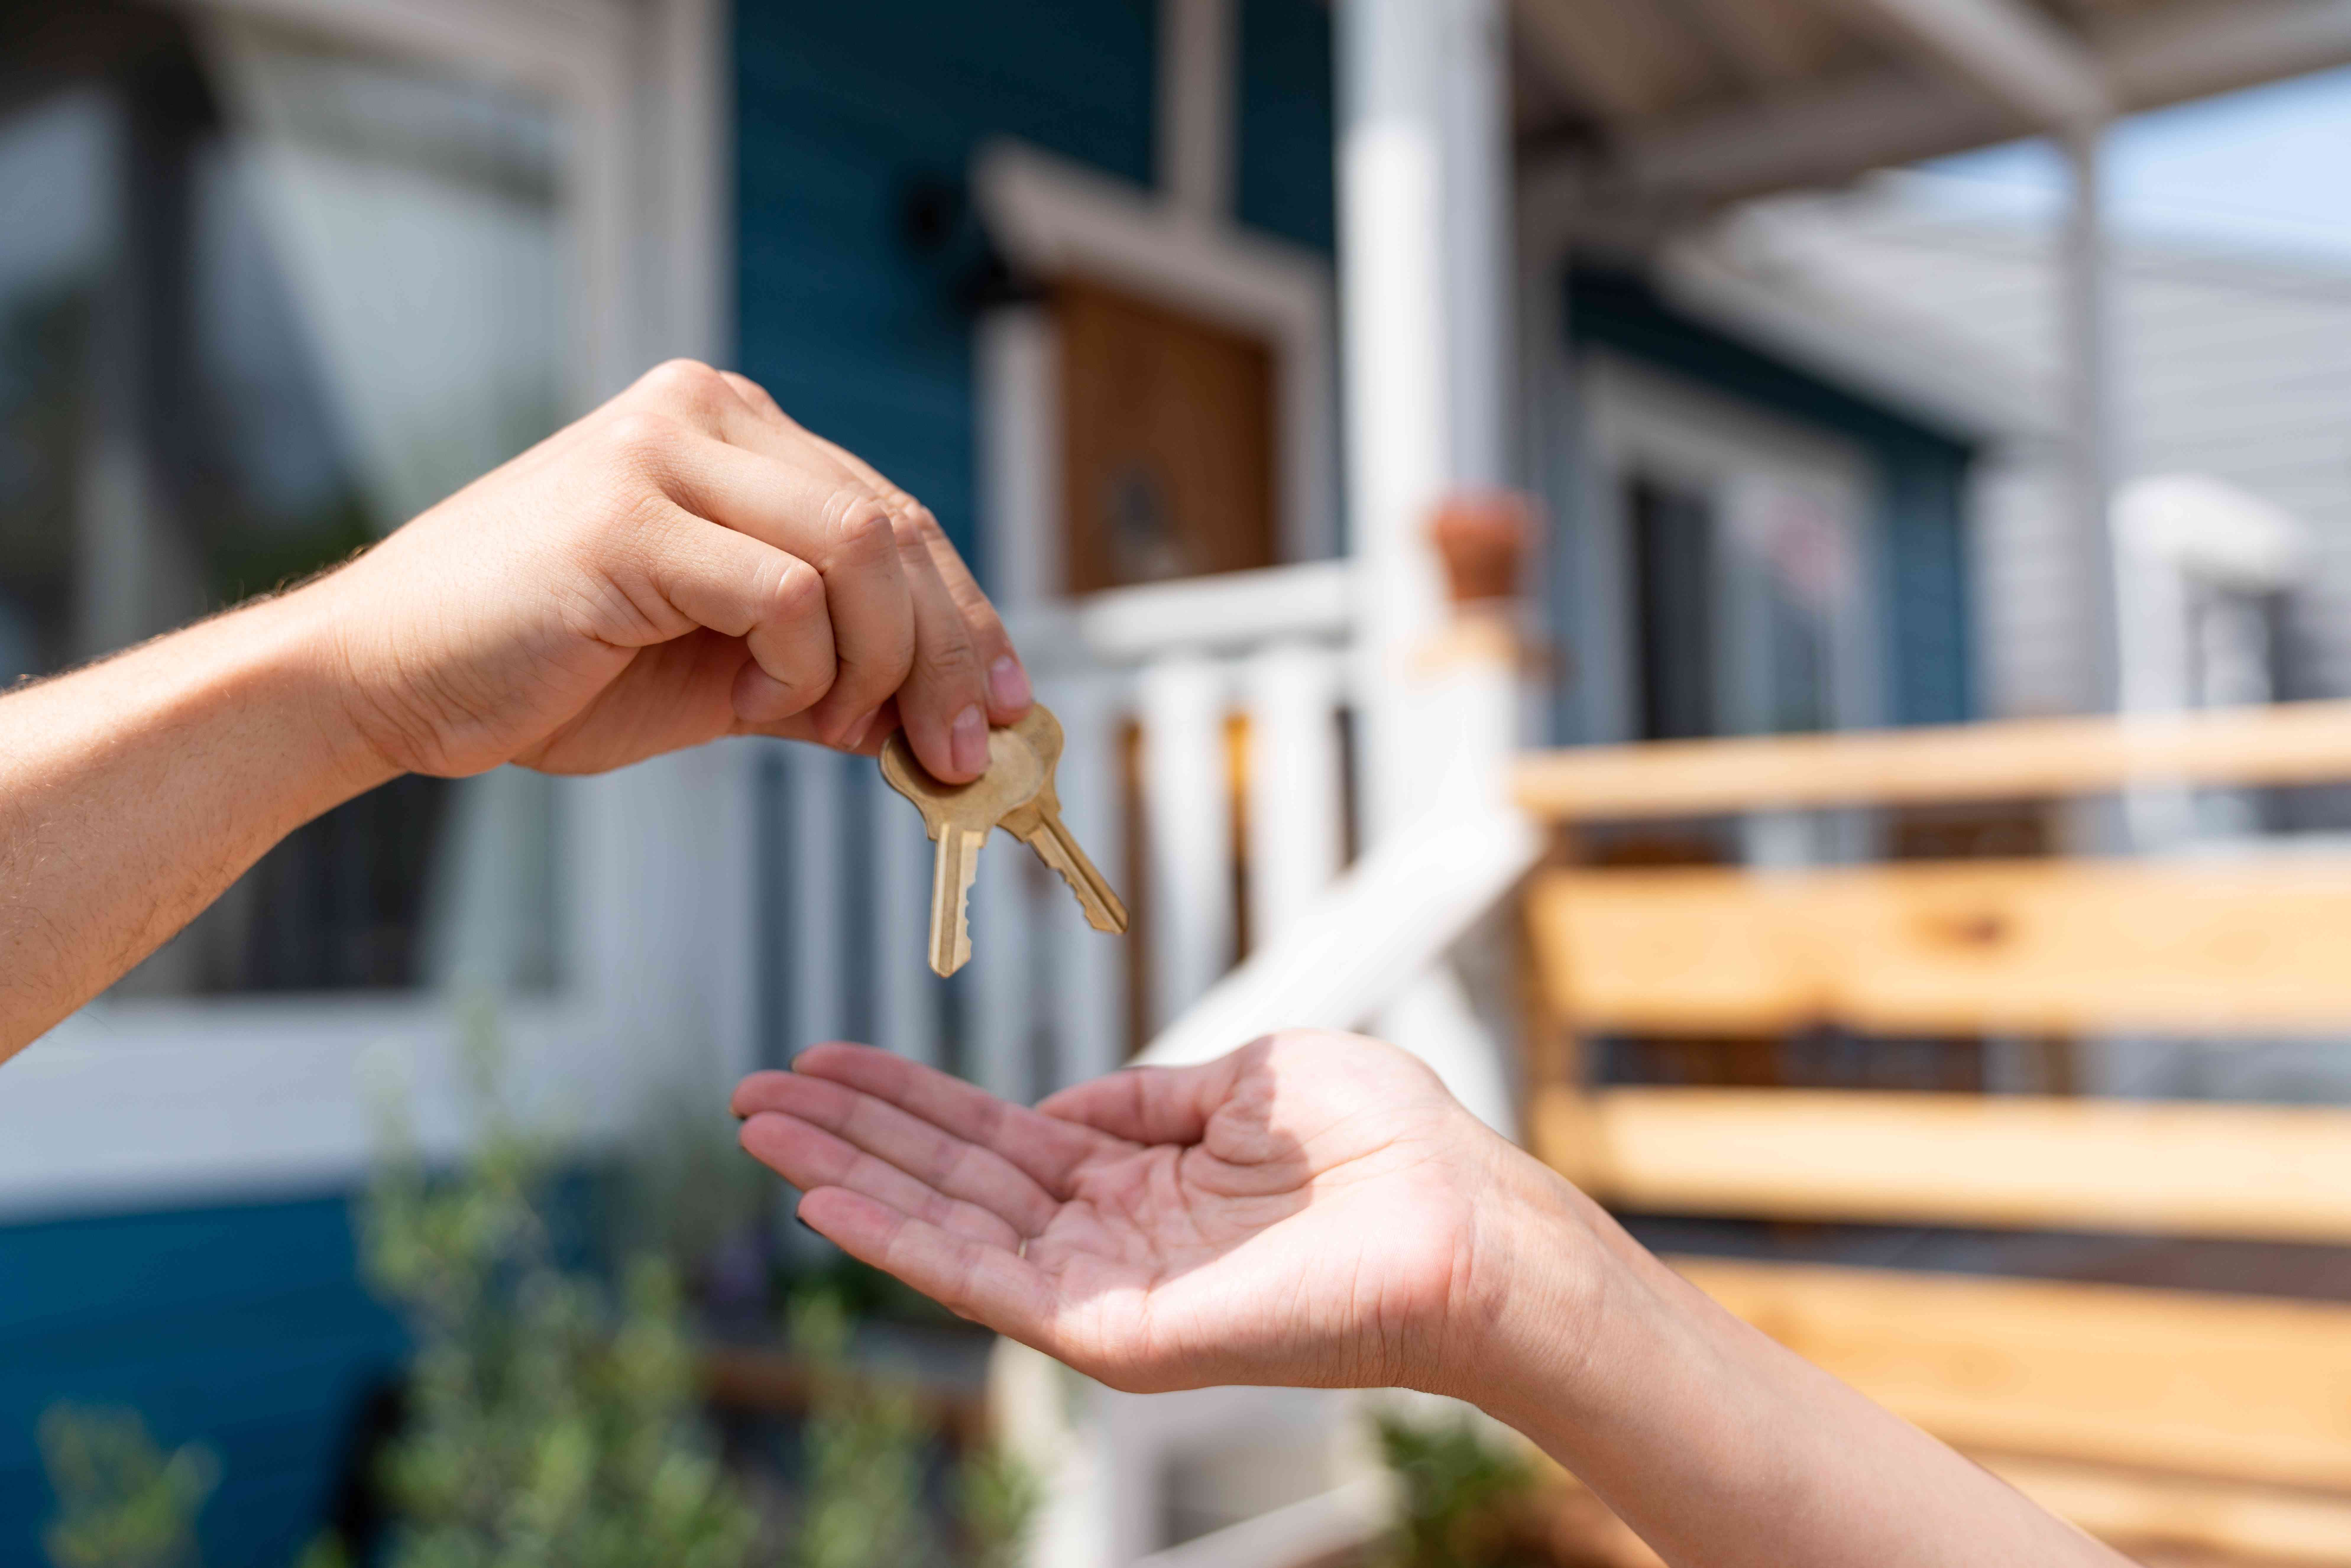 Keys being handed over after buying a home